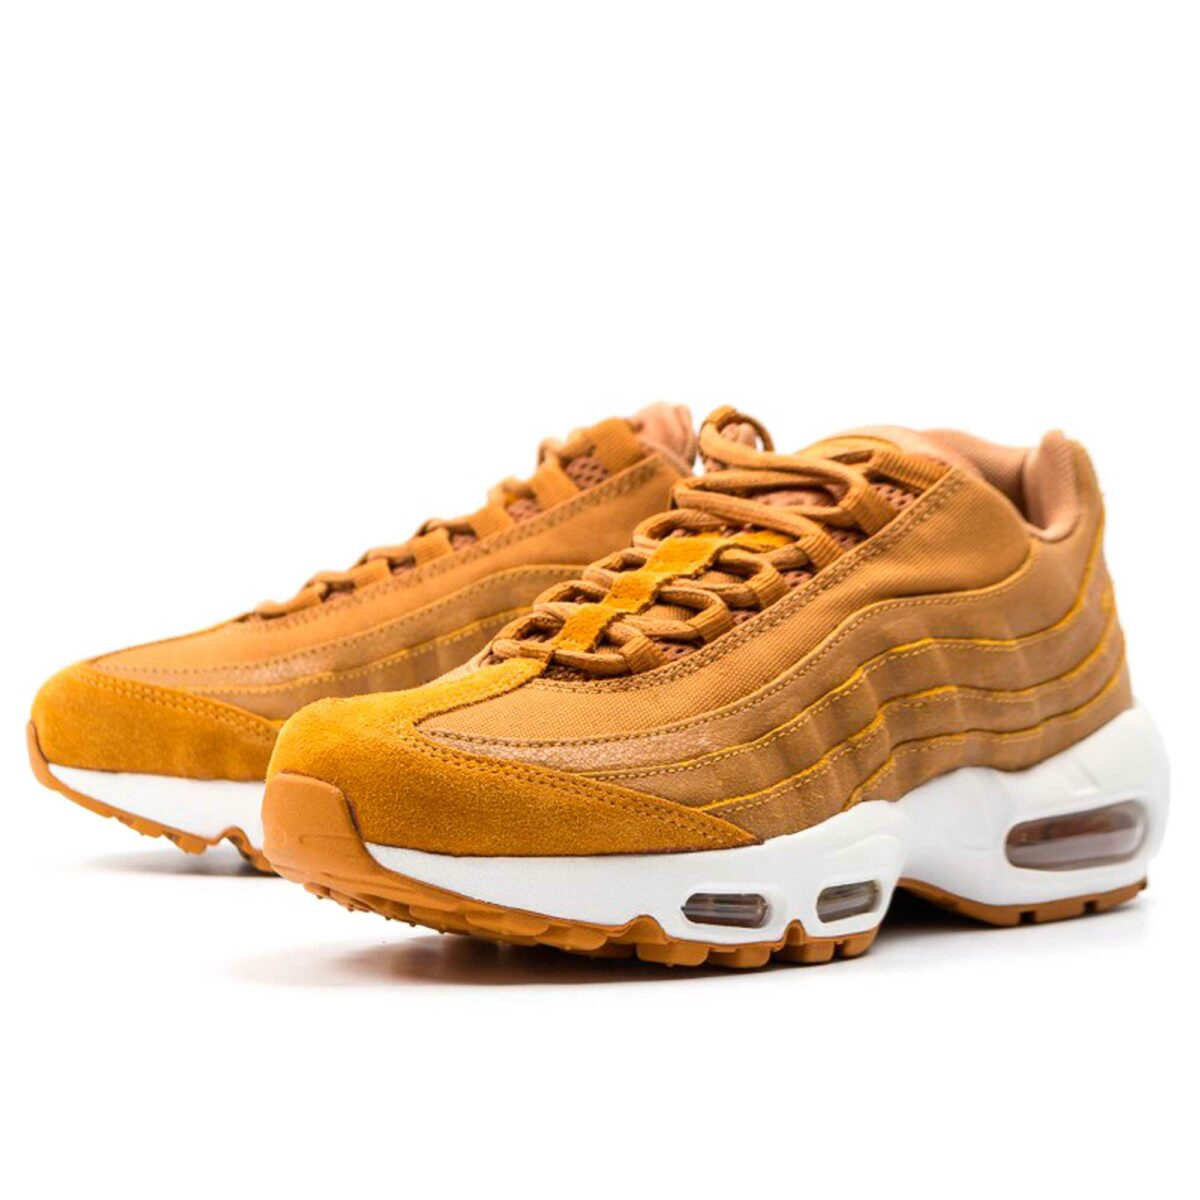 nike air max 95 premium brown 807443-700 купить